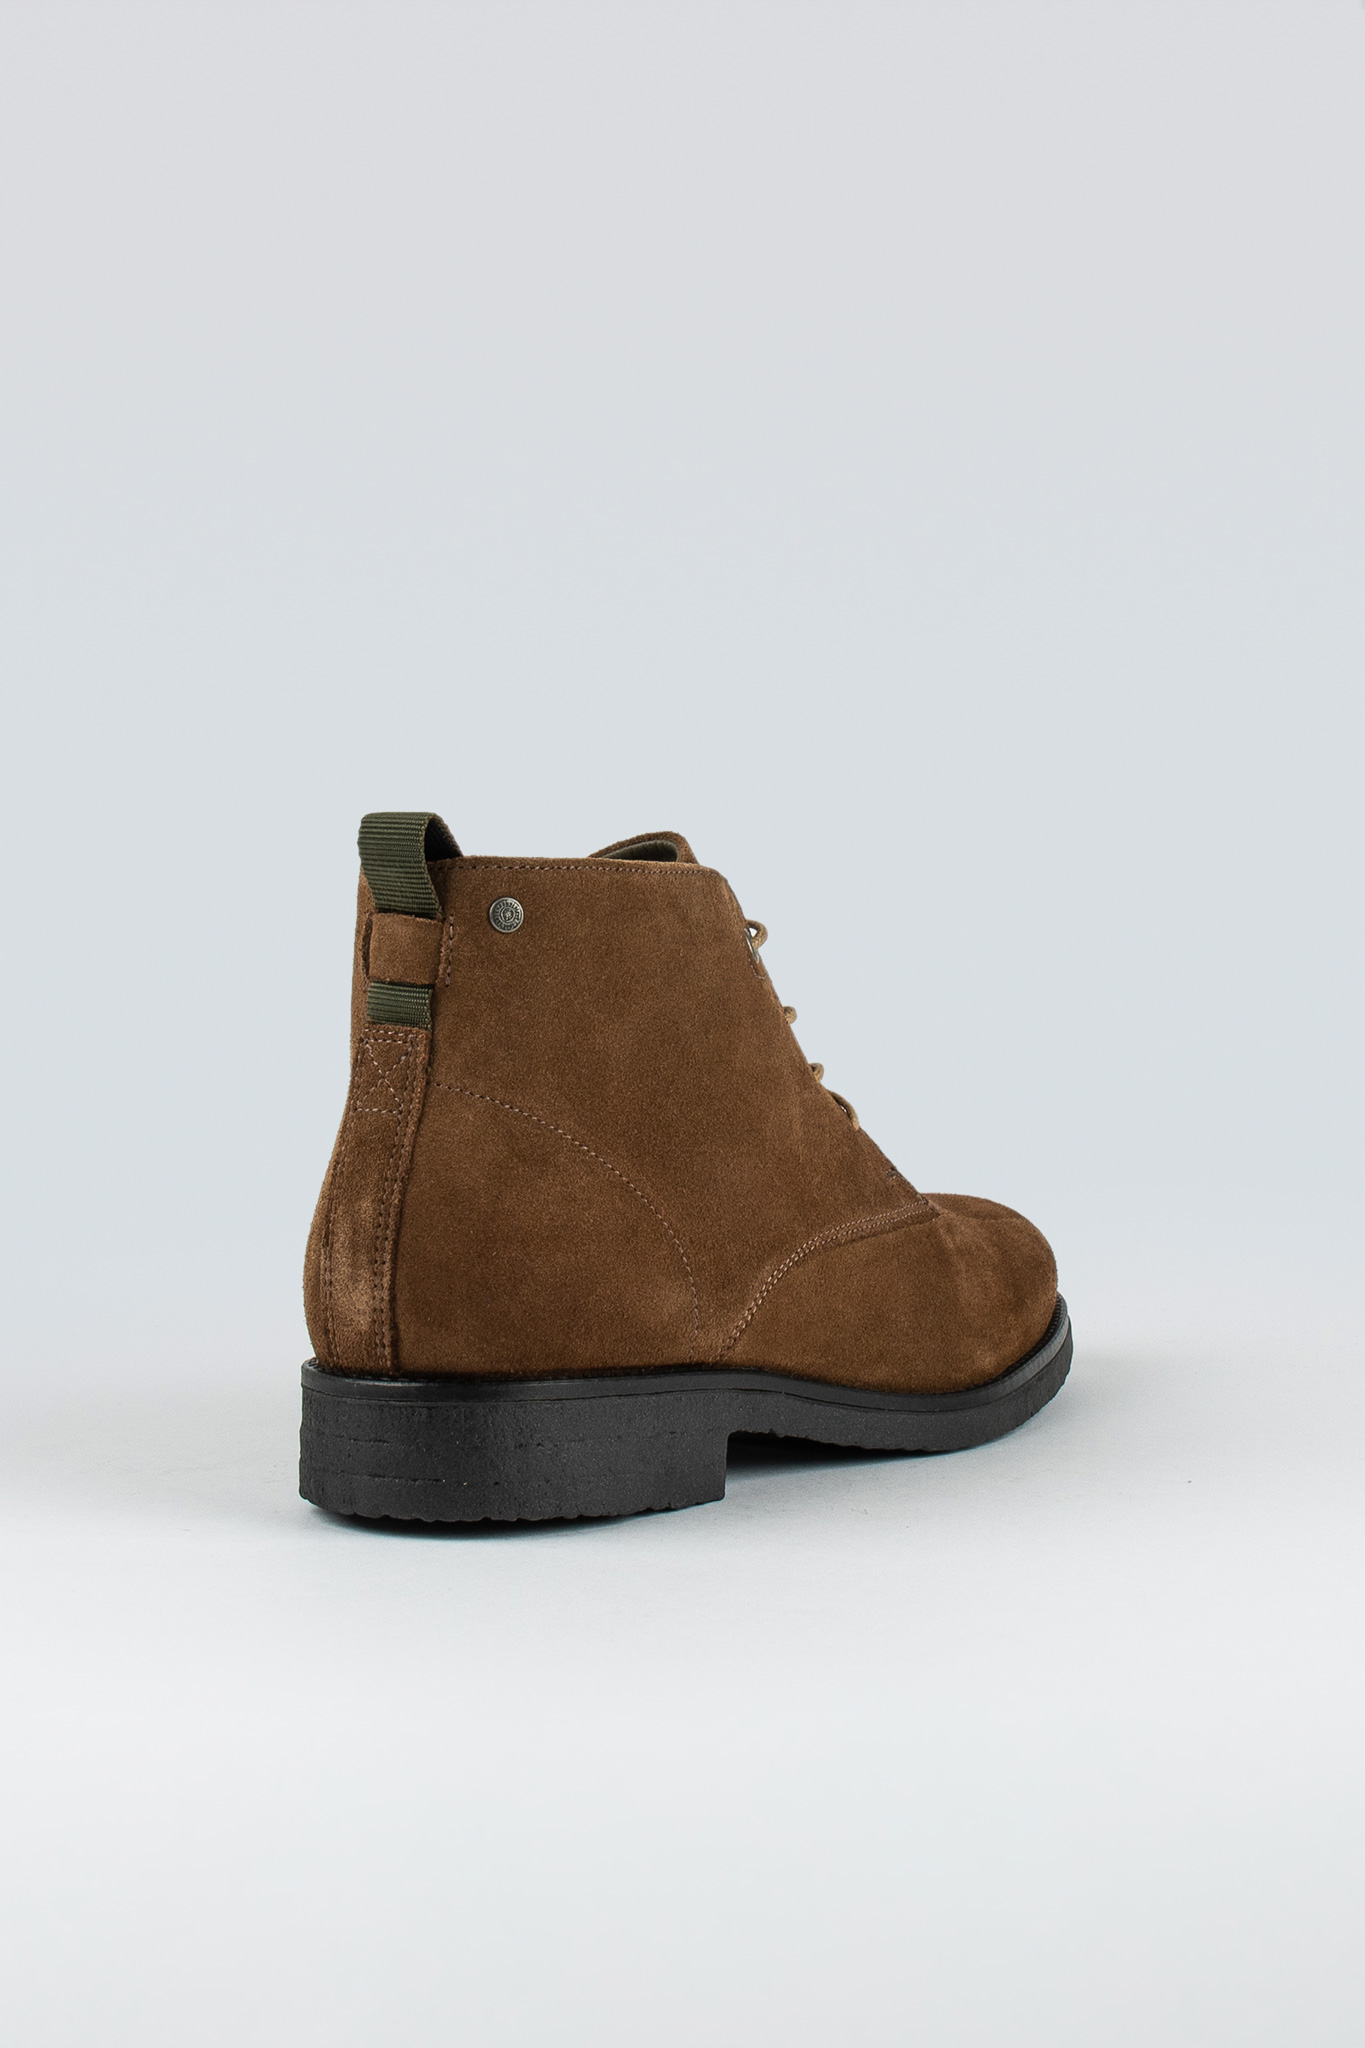 Tony Suede Tobacco